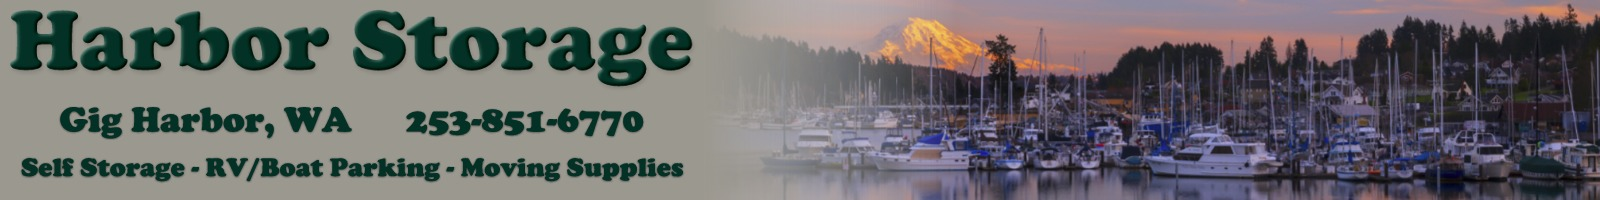 Harbor Storage of Gig Harbor WA